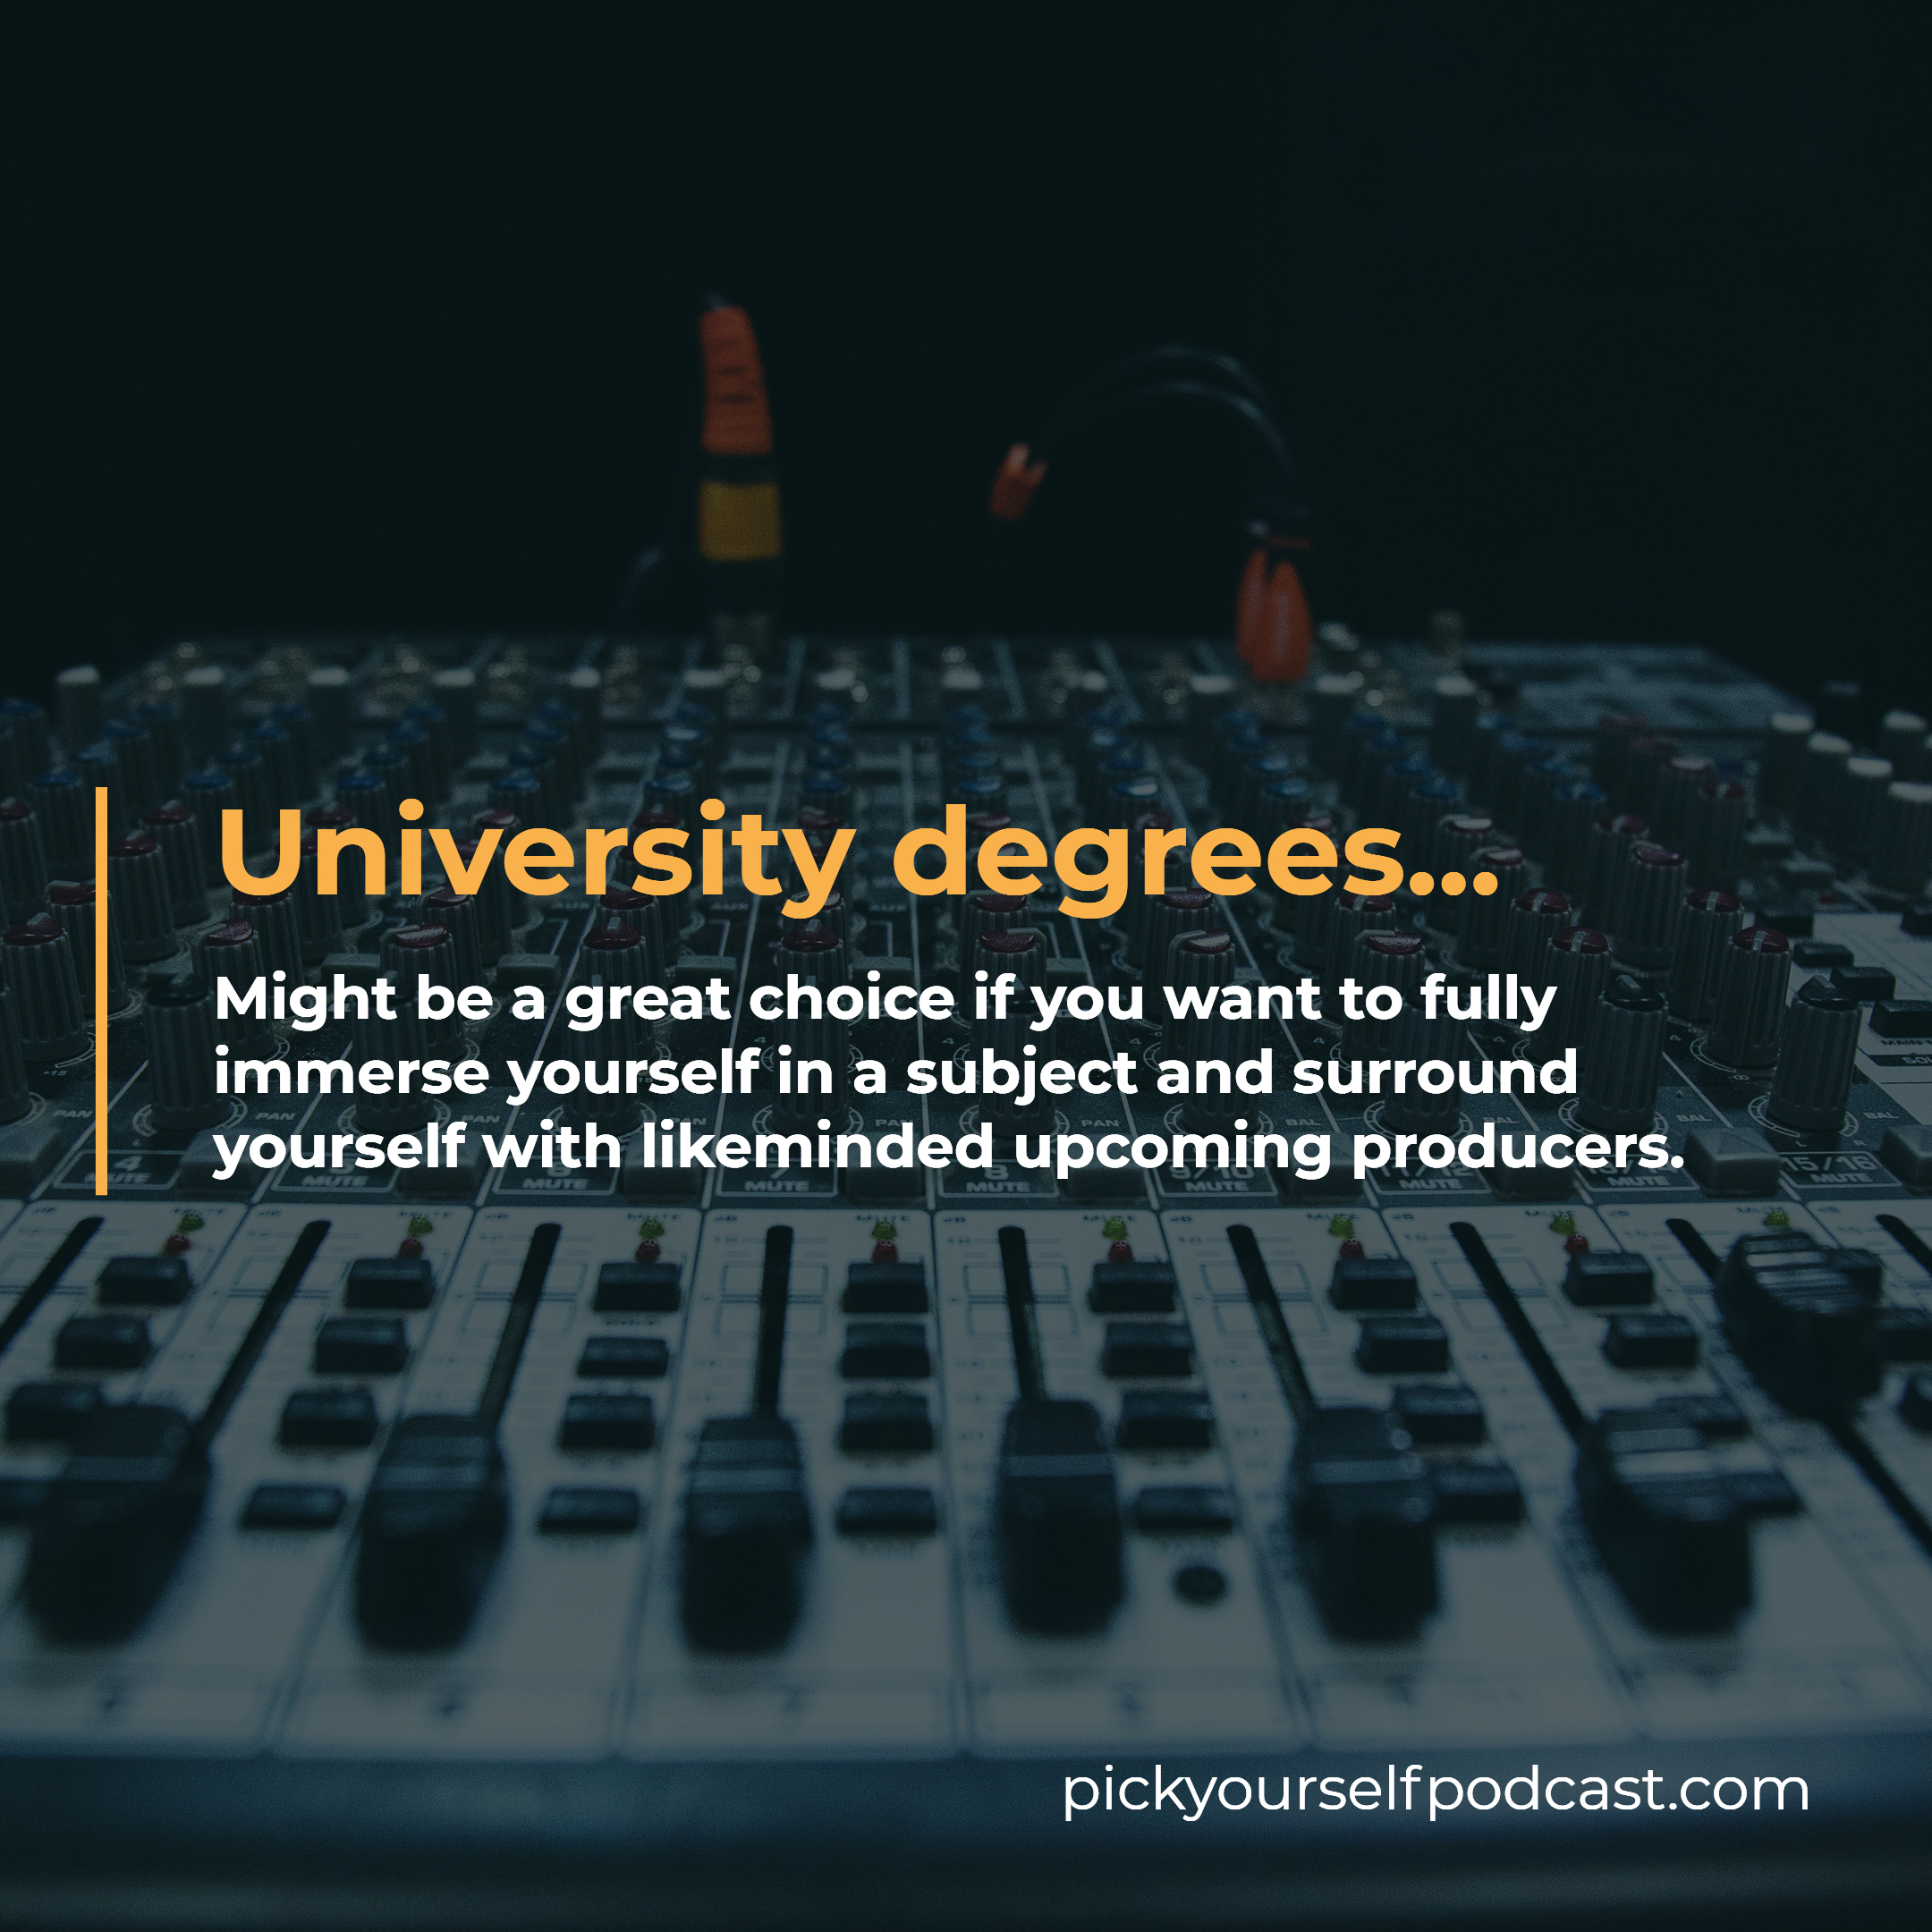 Electronic music degree programs at university level are perfect for you if you want to fully immerse yourself in a subject.